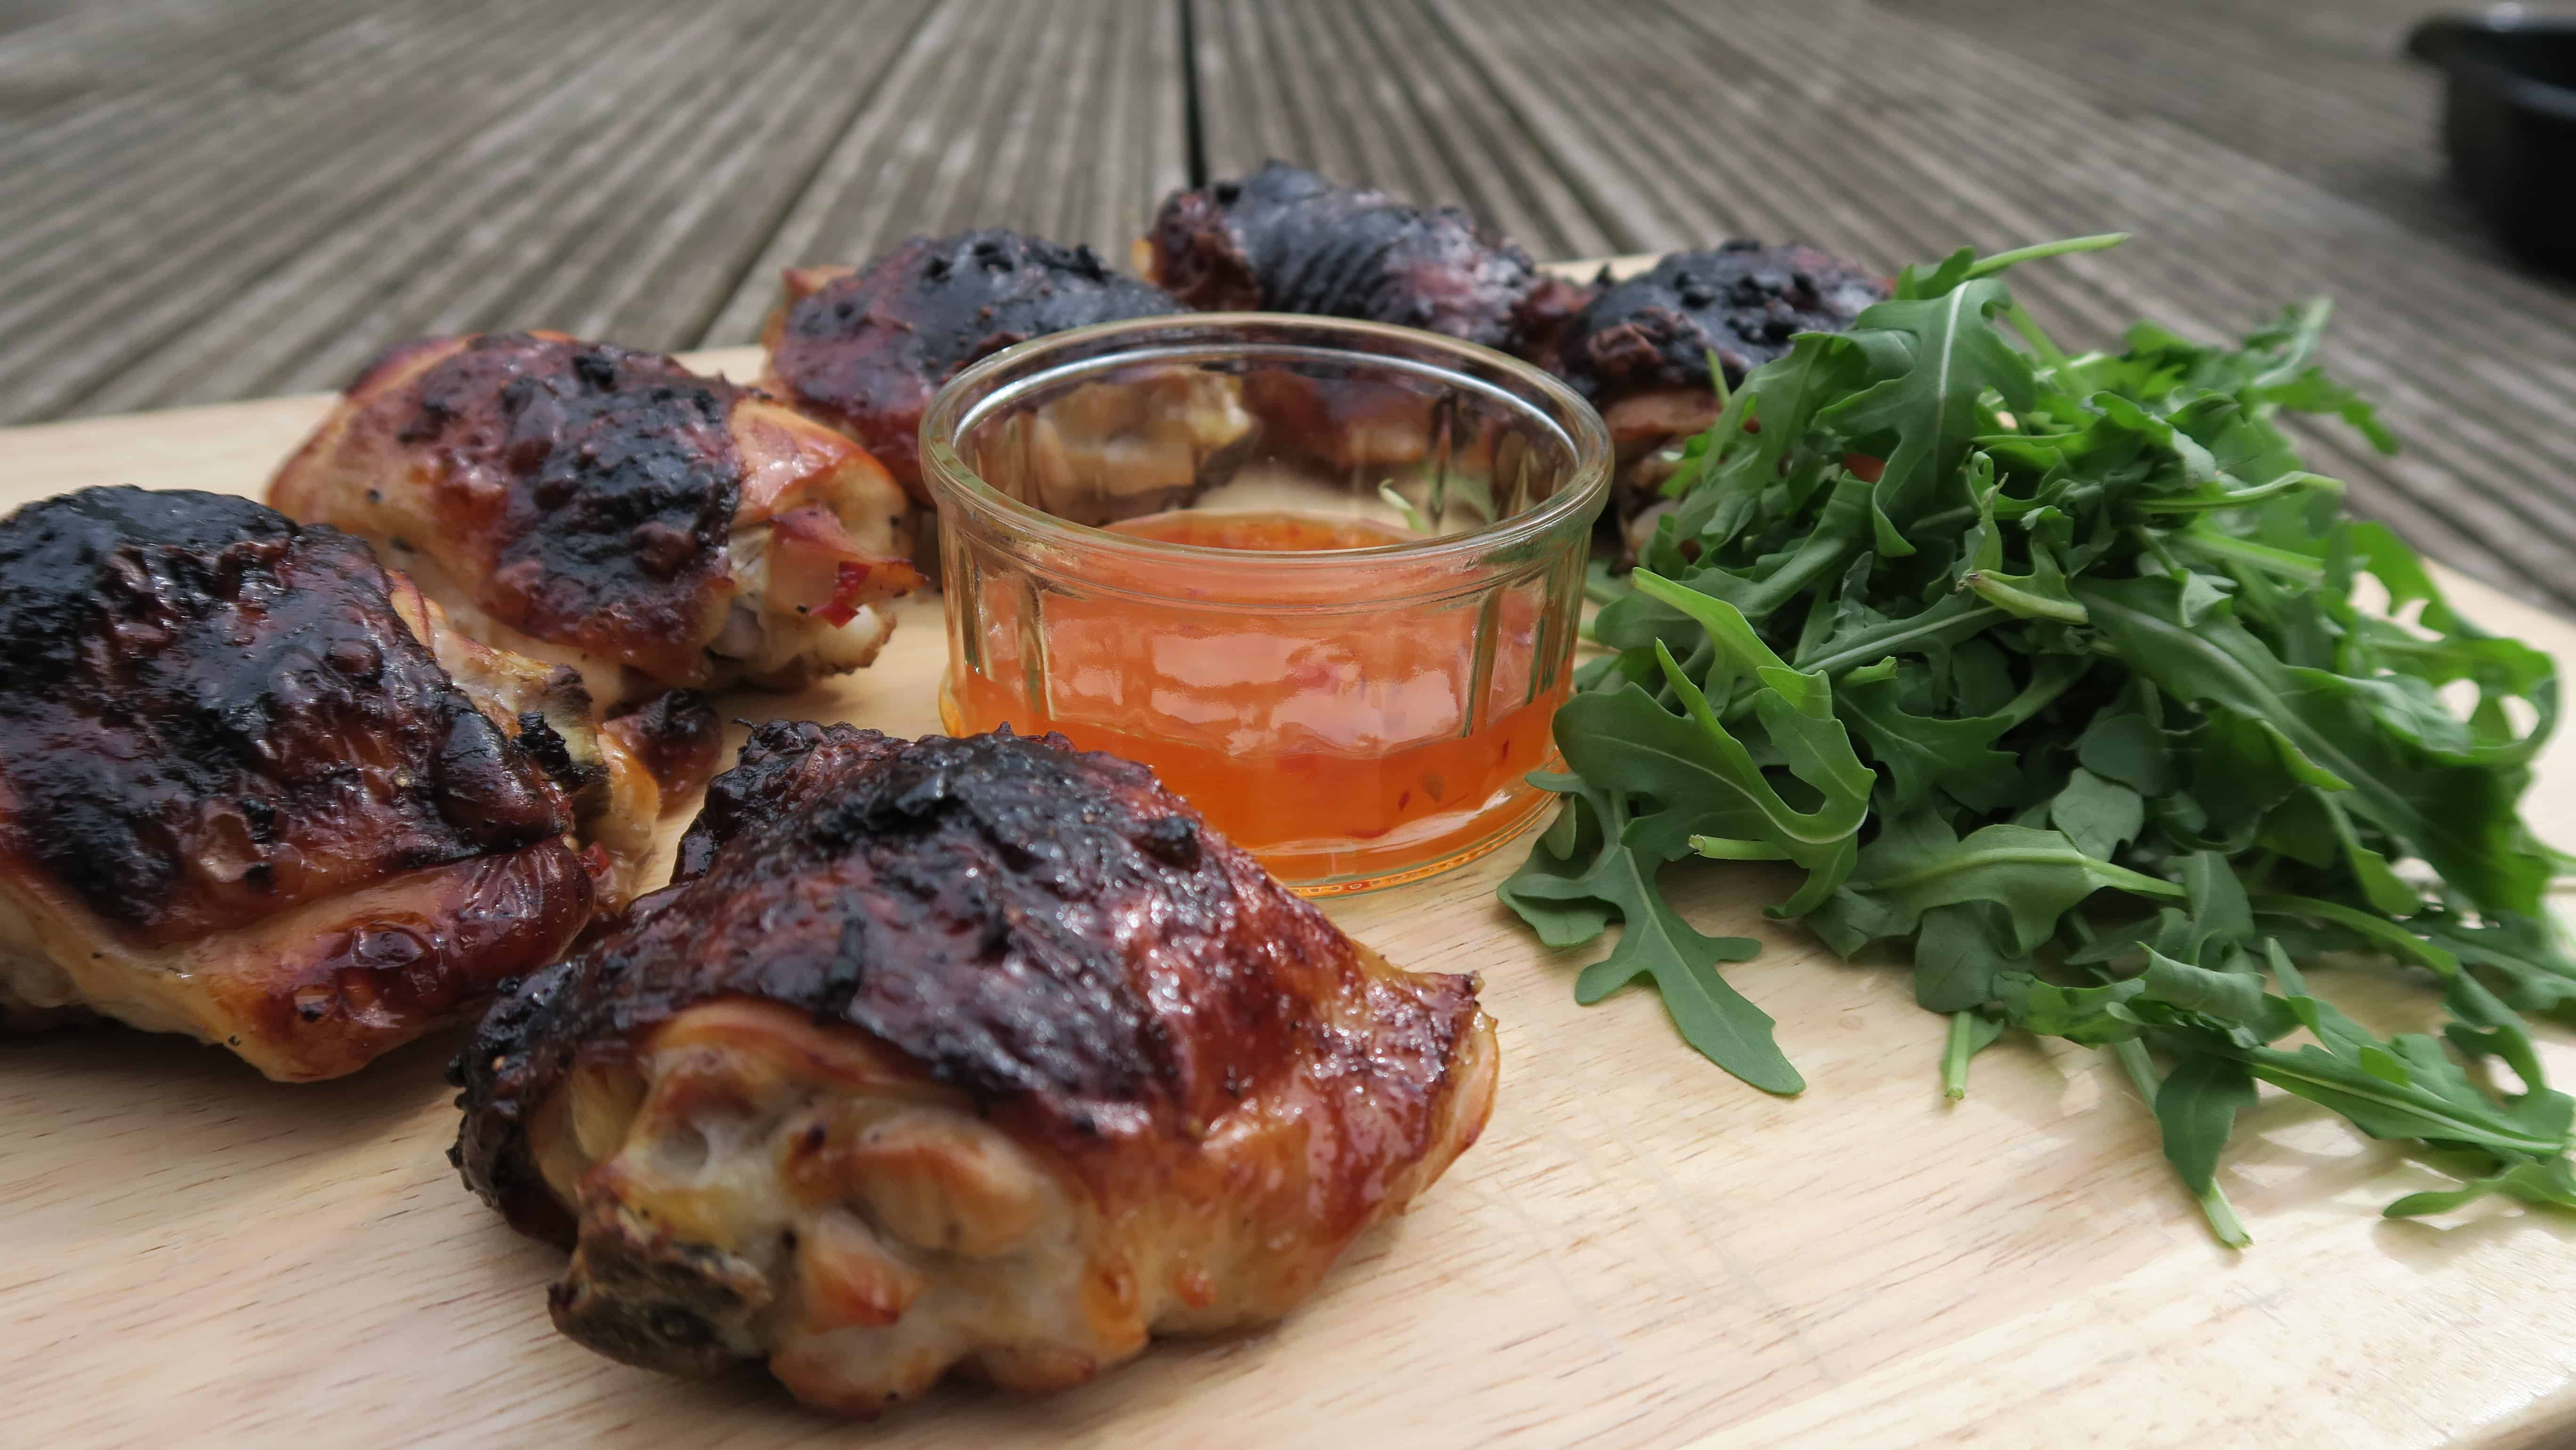 CHIPPA HONEY WORCESTER CHICKEN THIGHS (C) SARAH HOWELLS THE GLUTEN FREE BLOGGER.JPG (14)